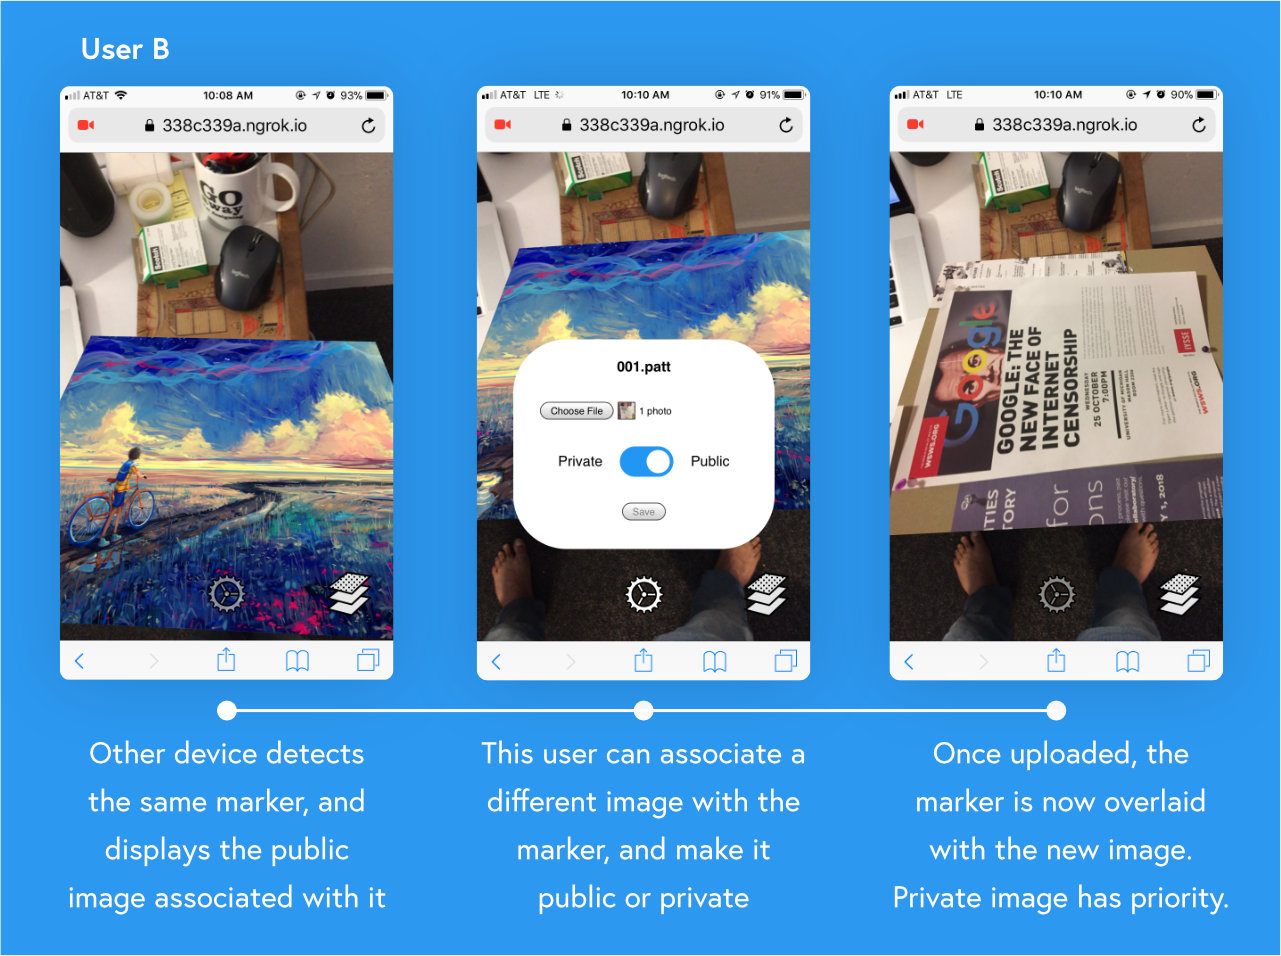 Other device detects the same marker, and displays the public image associated with it. This user can associate a different image with the marker, and make it public or private. Once uploaded, the marker is now overlaid with the new image. Private image has priority.